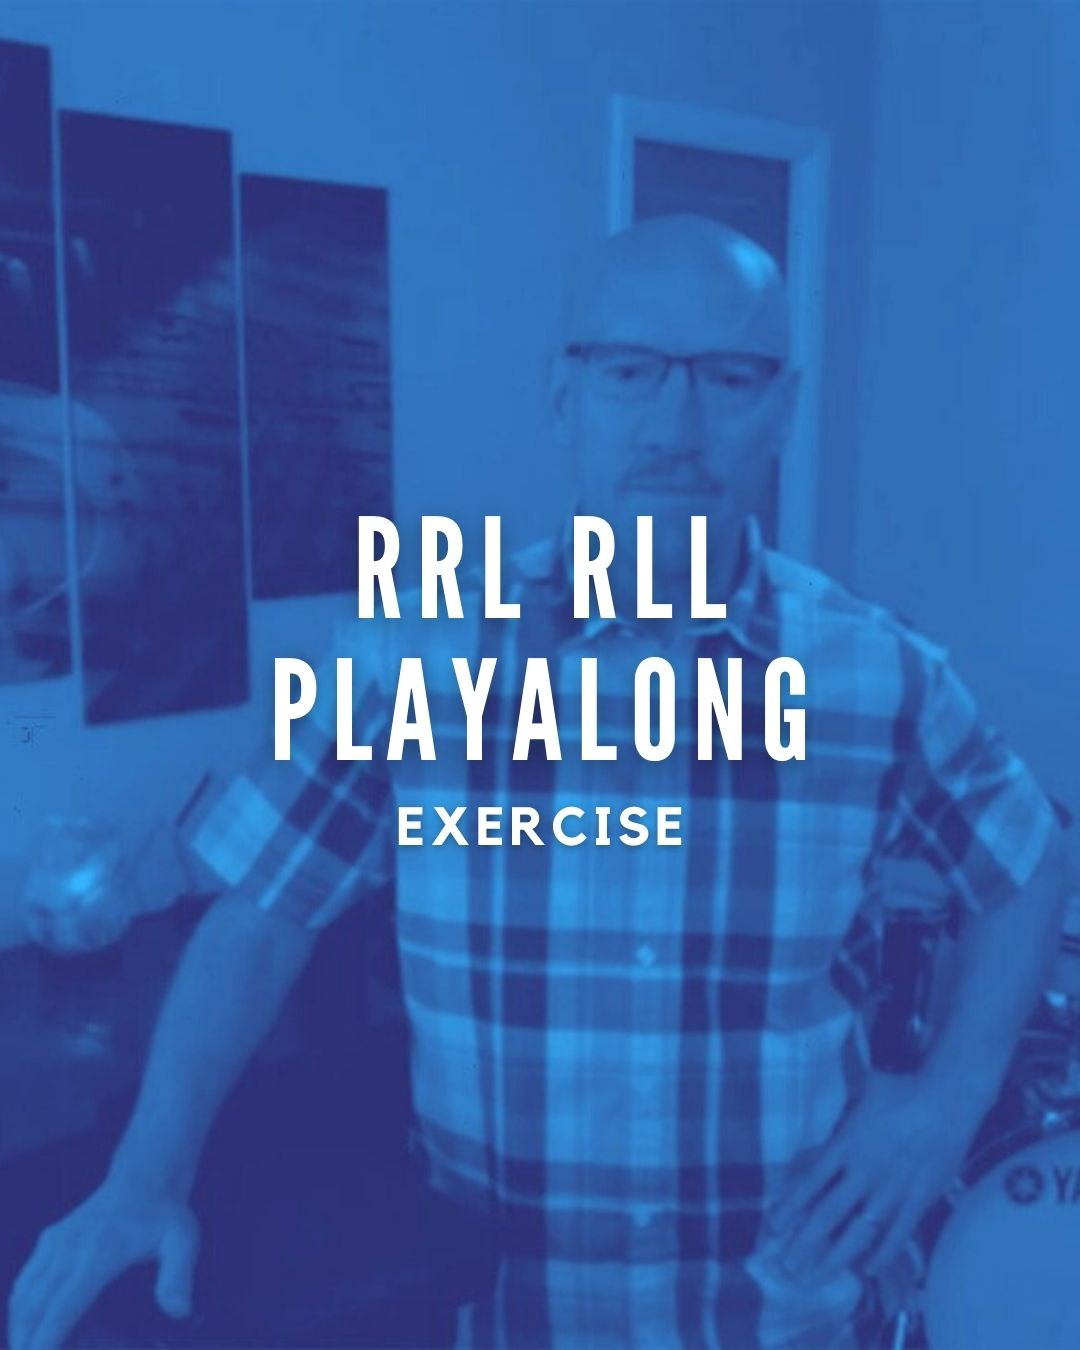 RRL RLL Playalong